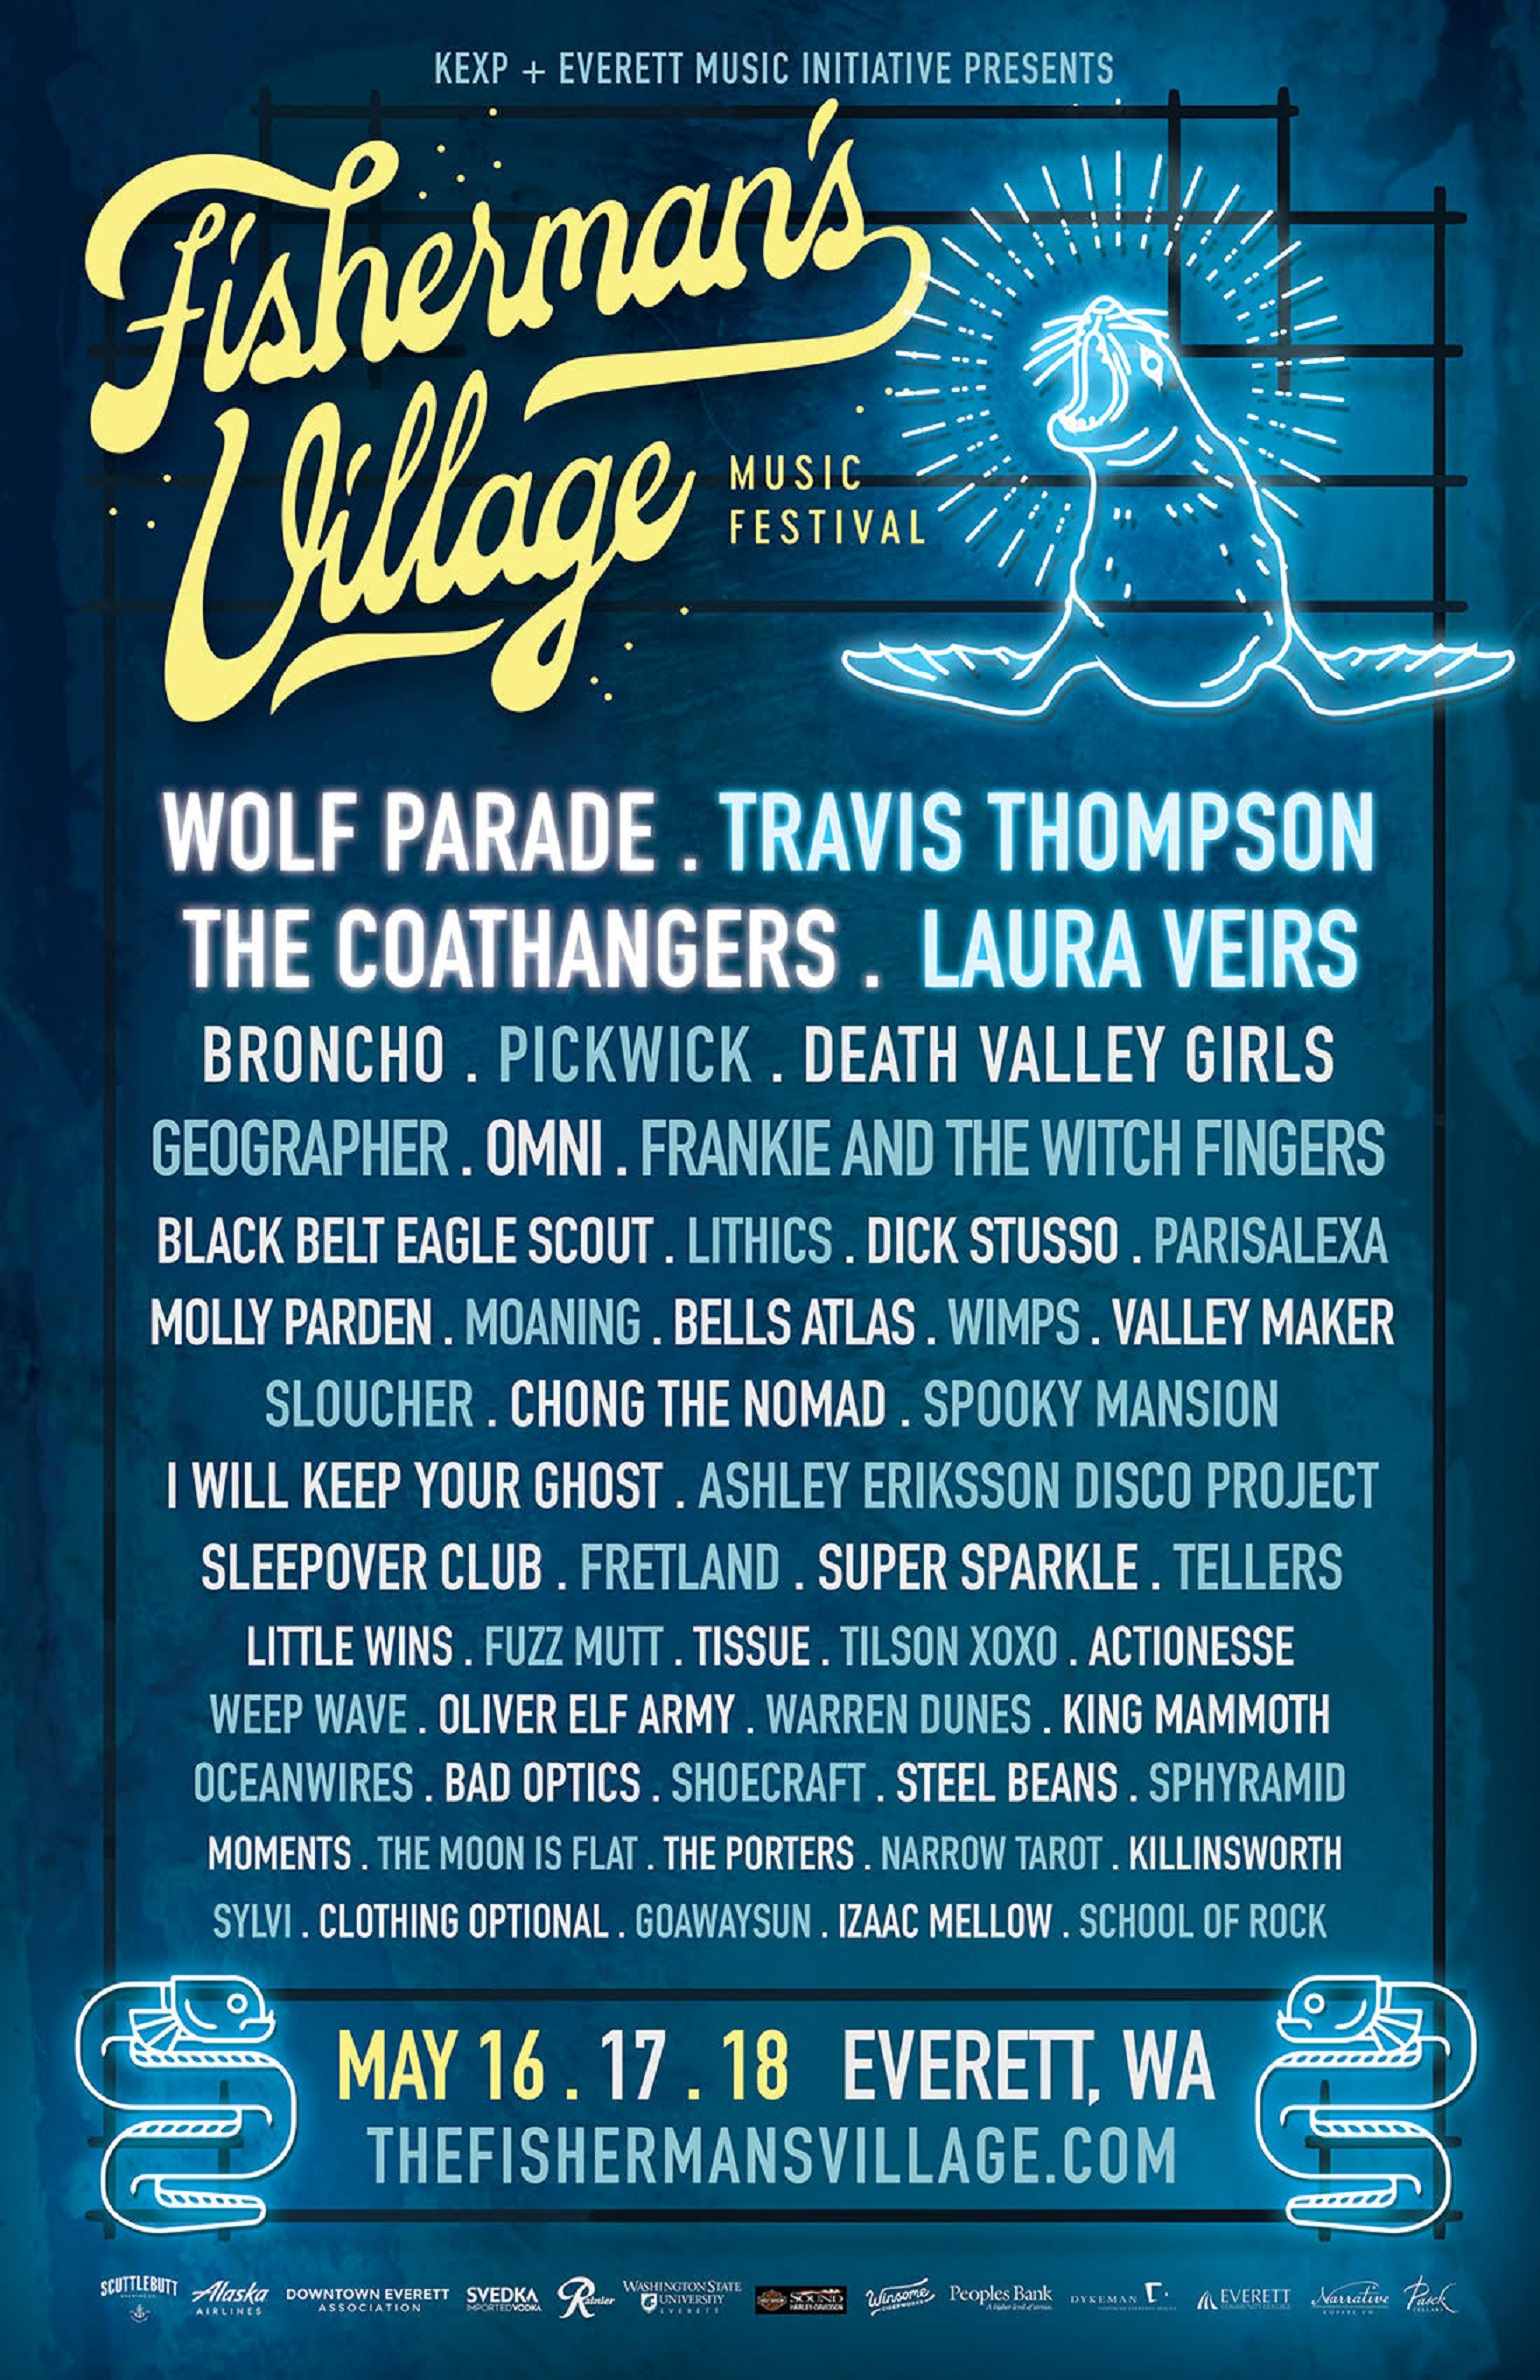 Fisherman's Village Music Festival Announces 2019 Lineup